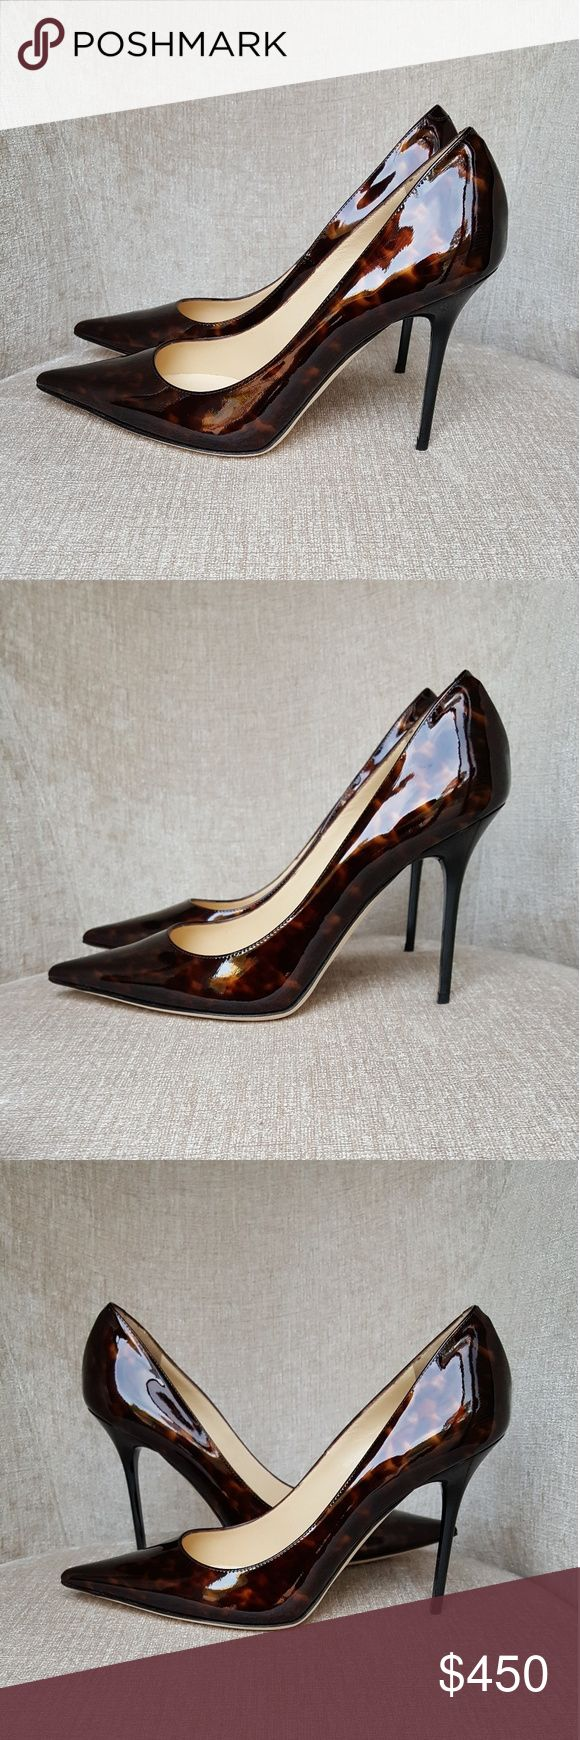 NIB Jimmy Choo Patent Tortoise Abel Pumps US 9.5 / Euro 39.5.  New with box and dustbags.  Heels 4.25 inches.  jim Jimmy Choo Shoes Heels